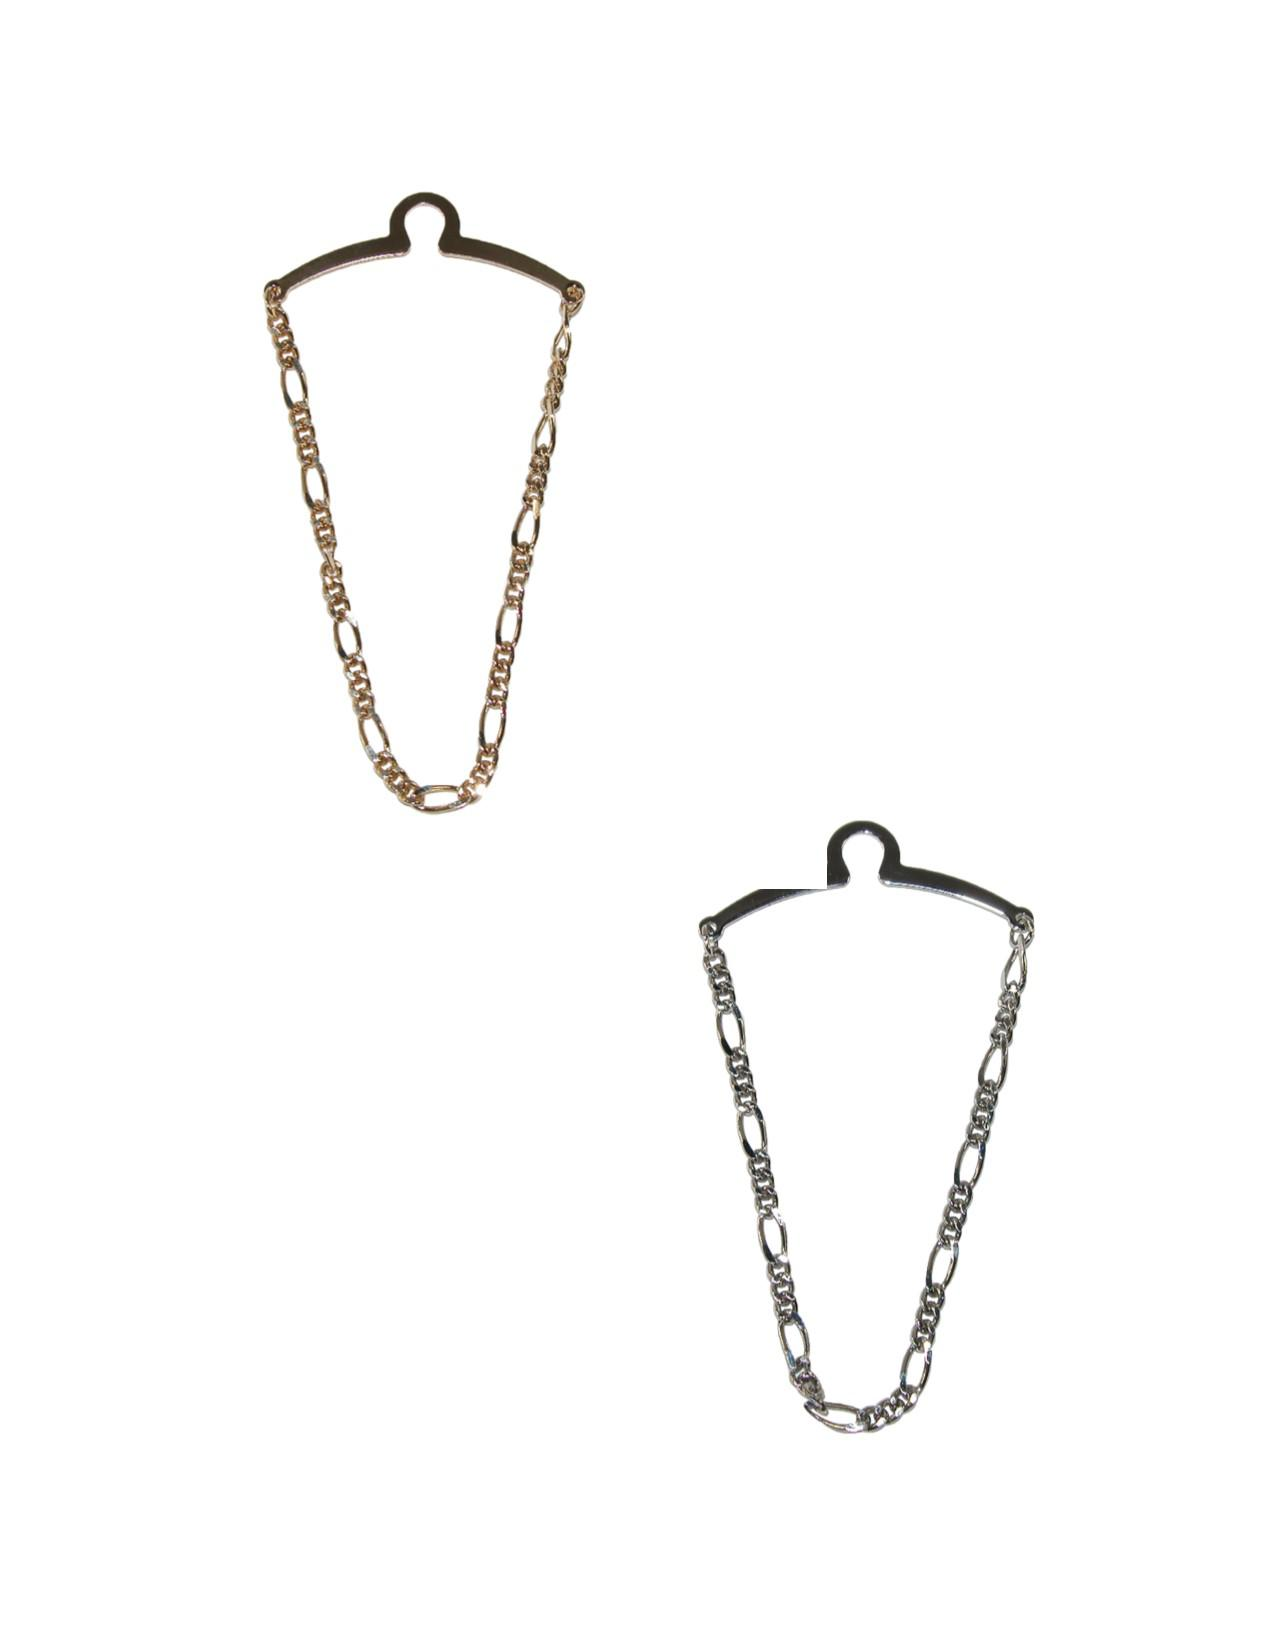 Competition Inc. Mens Figaro Style Link Tie Chains (pack Of 2)